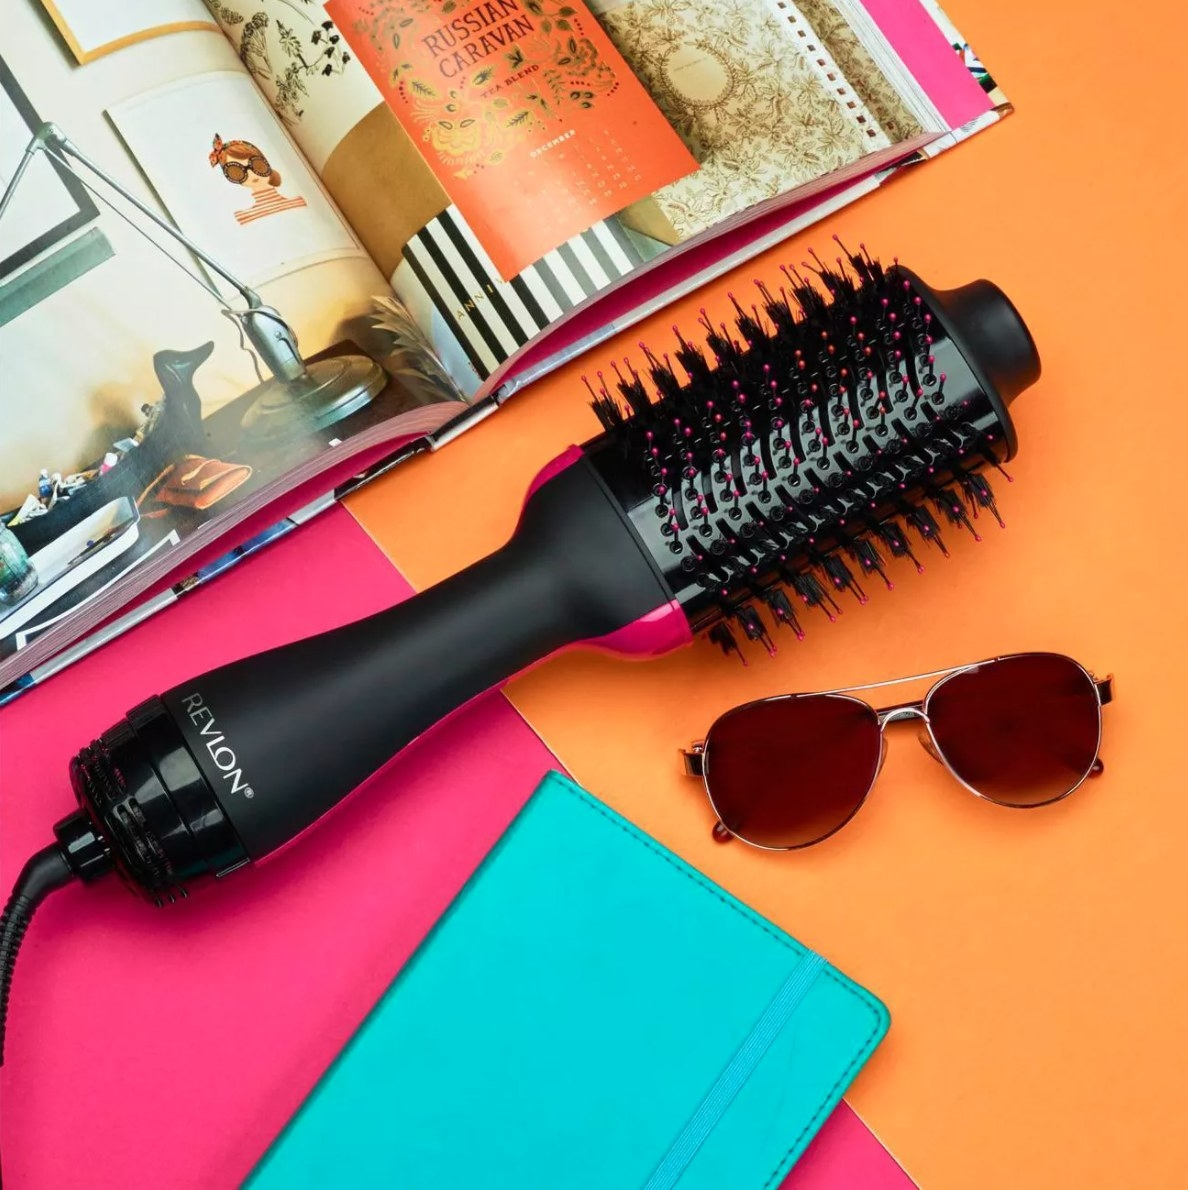 revlon one-step hair dryer and magazine on colorful background flat lay